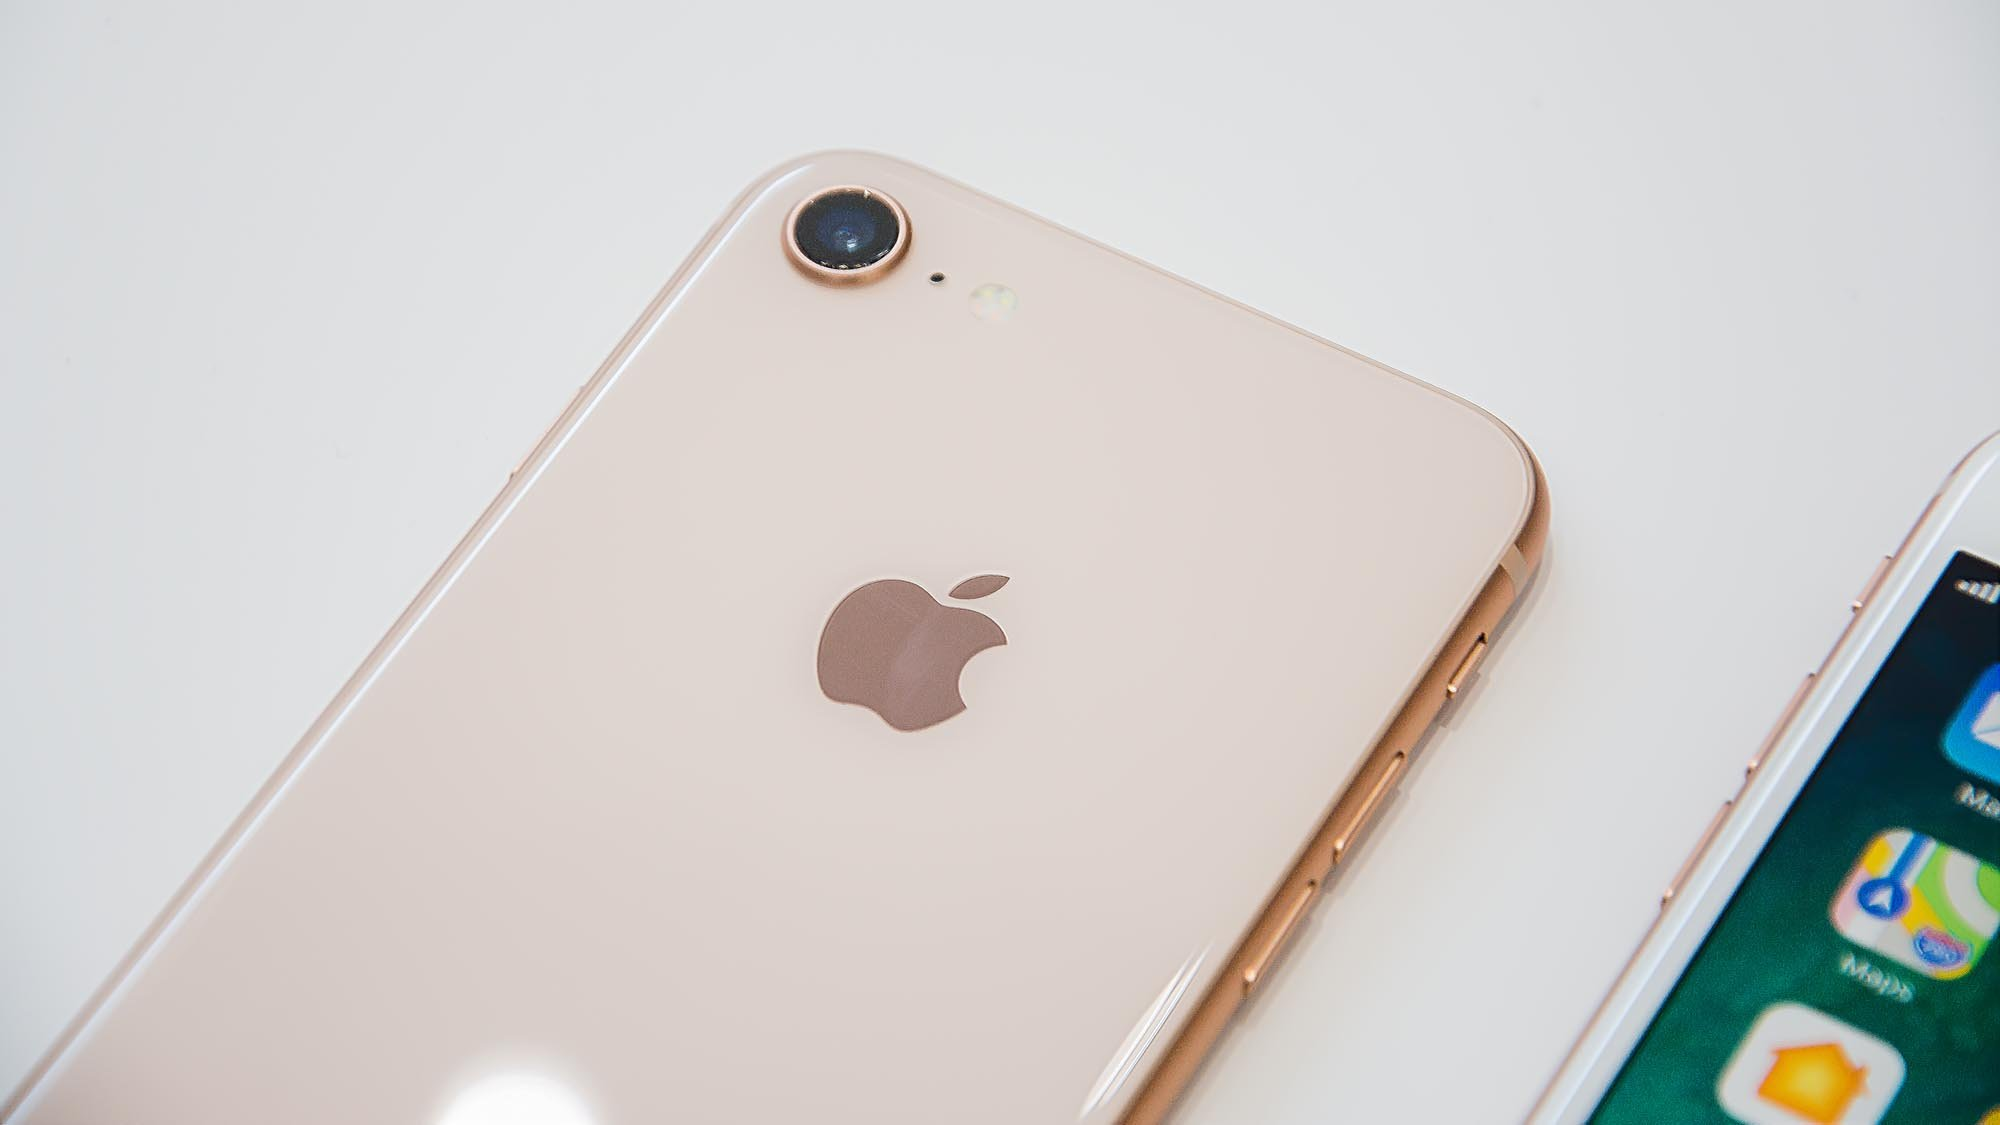 Iphone 8 Vs Iphone 7 Should You Upgrade To The New Apples